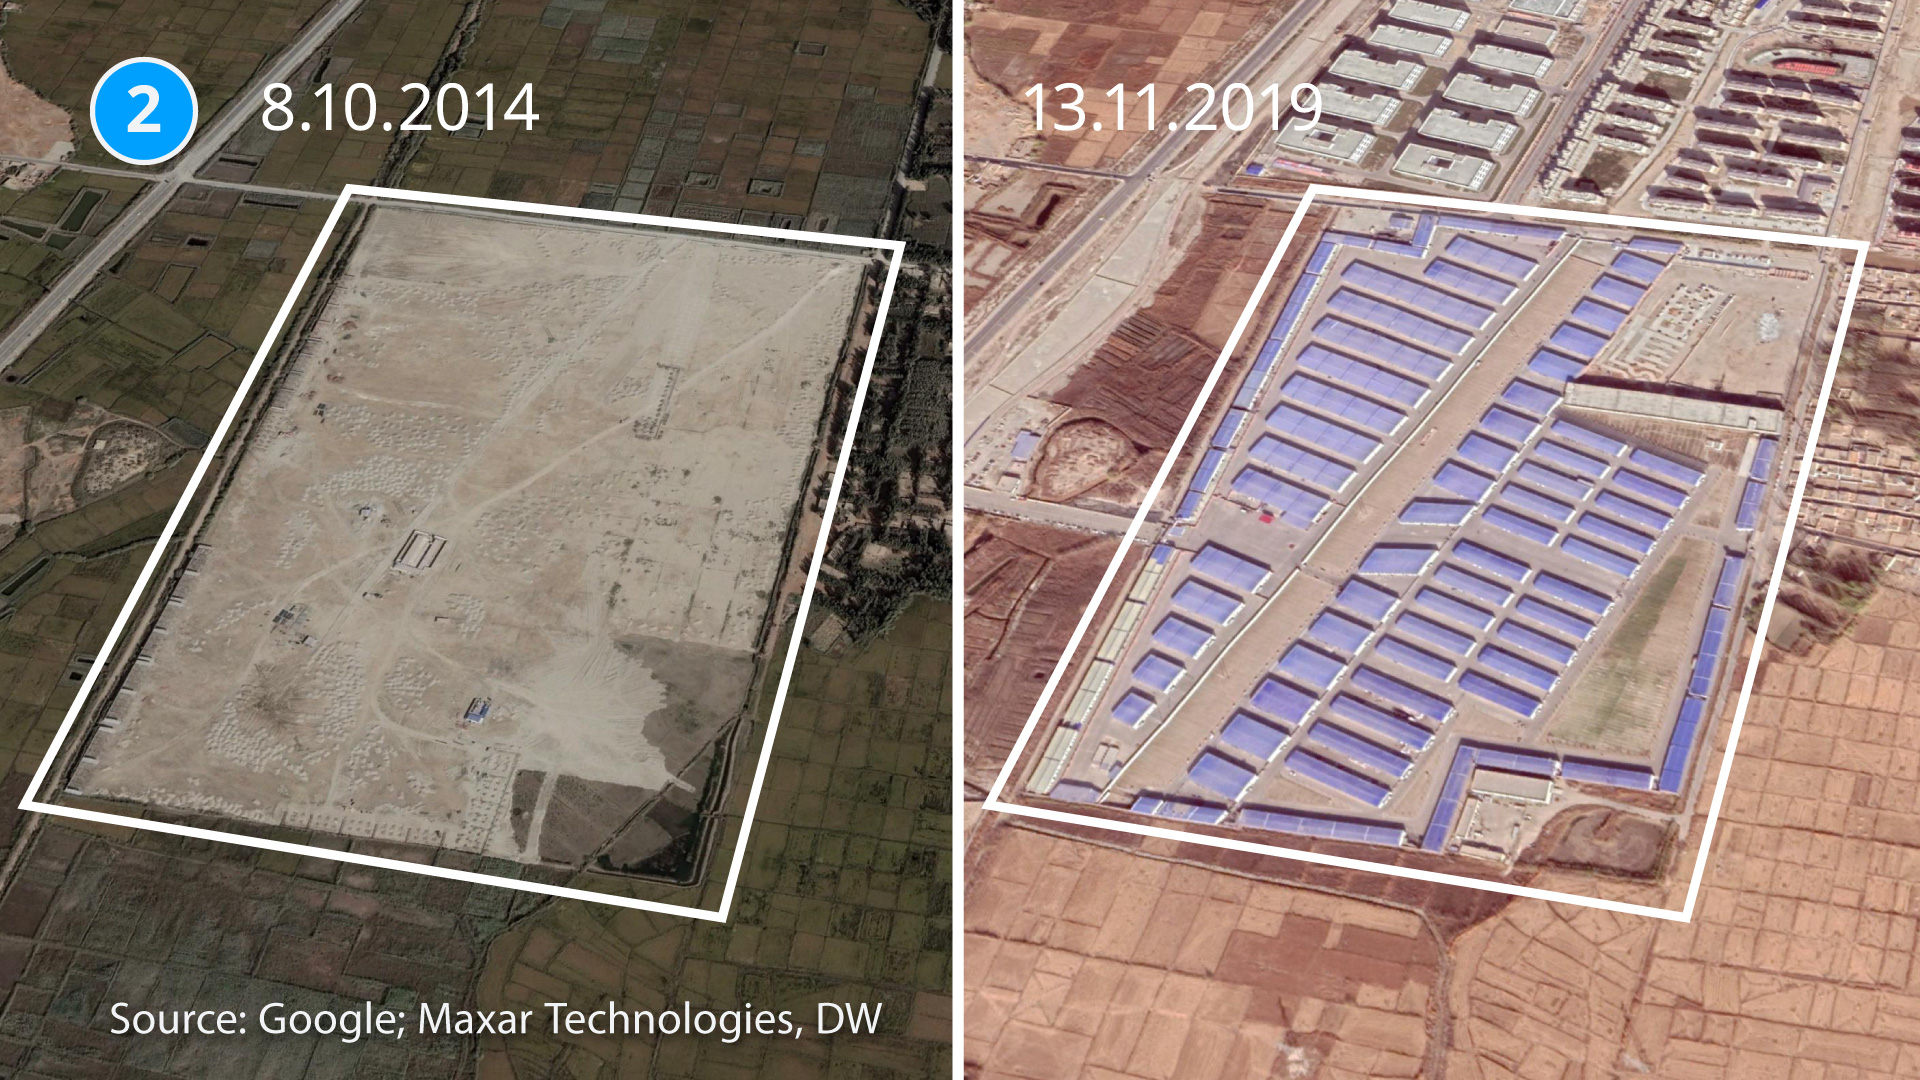 A satellite image of one of five newly built 're-education' camps in Hotan County, Xinjiang, China